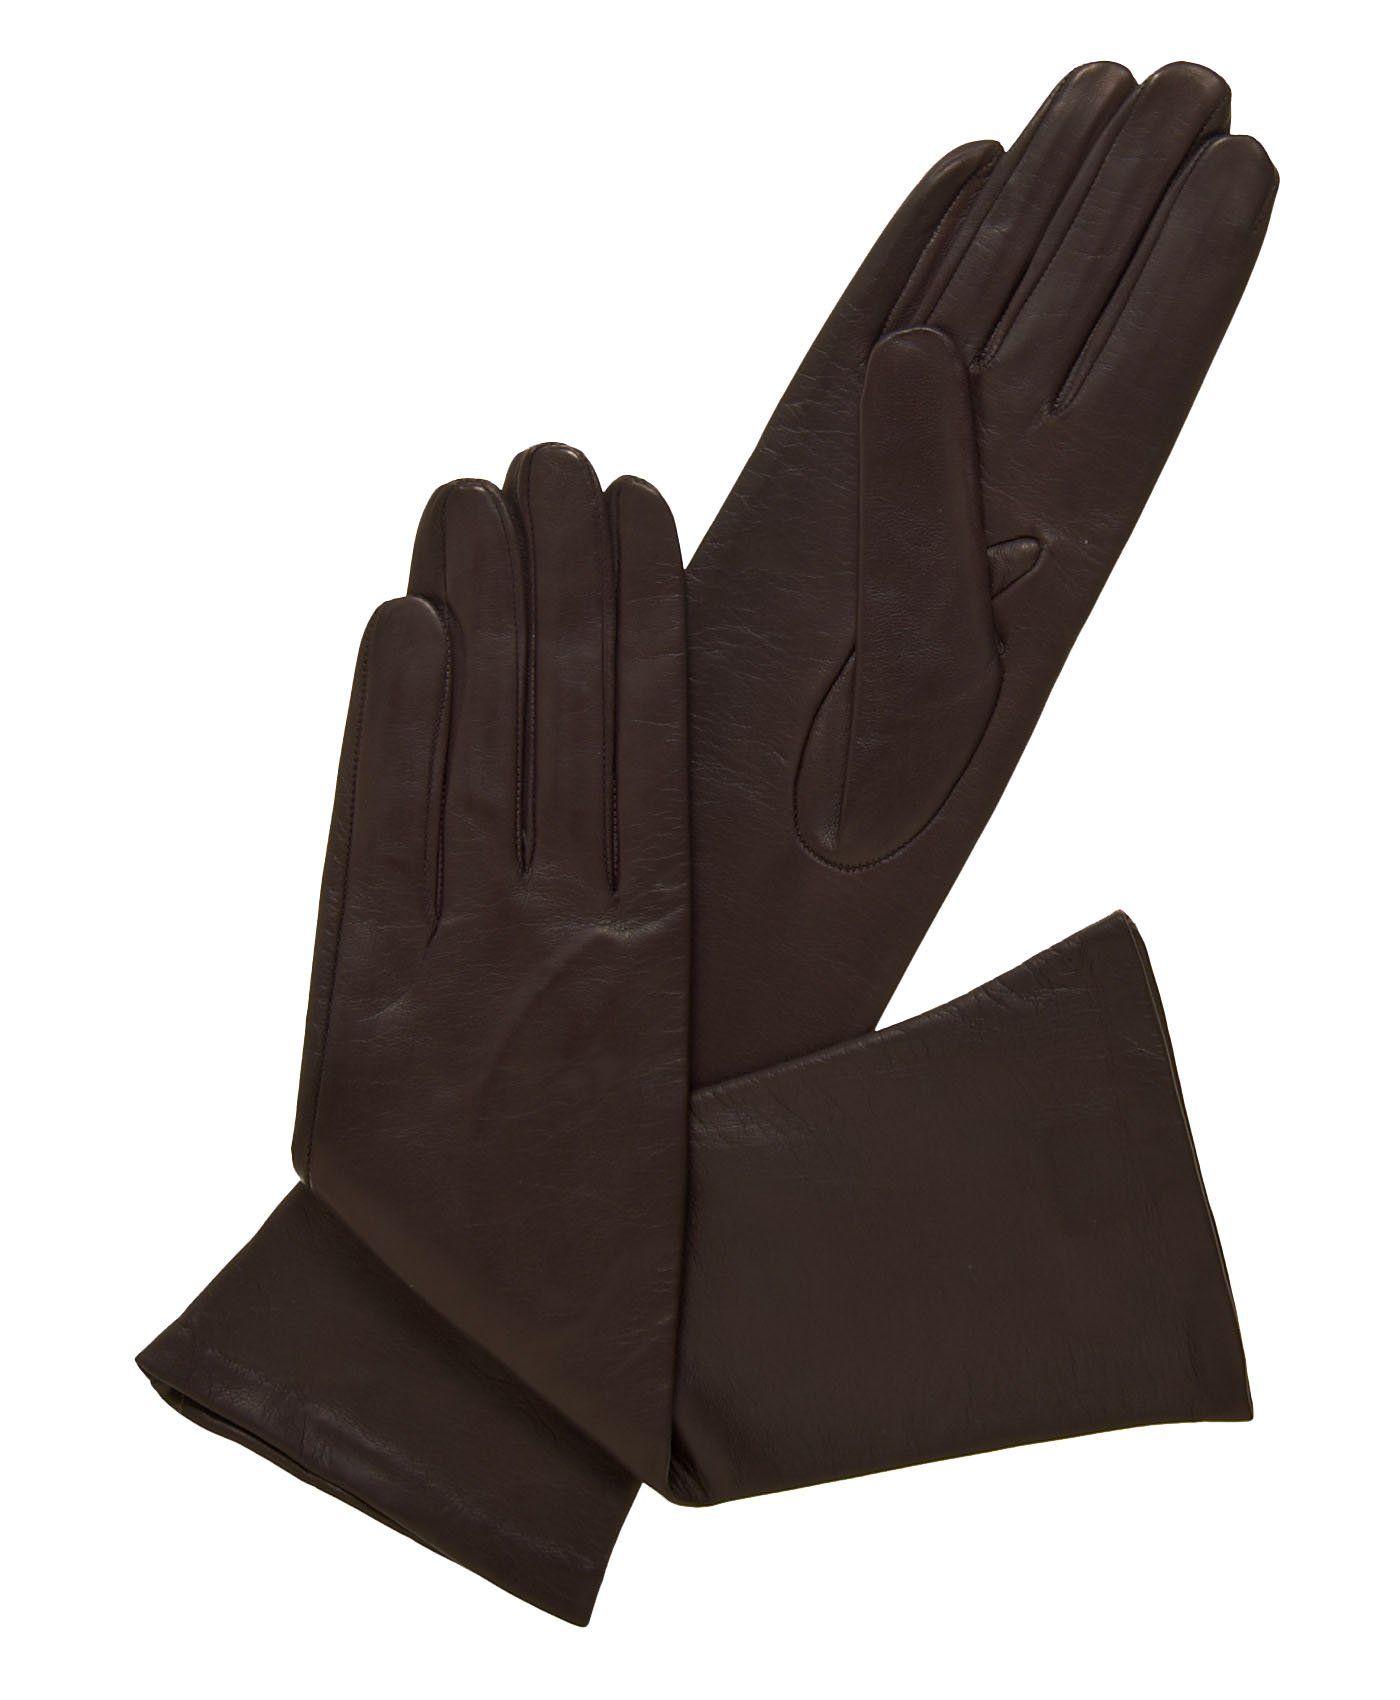 Fratelli Orsini Women's Italian ''6 Button Length'' Silk Lined Leather Gloves Size 8 Color Brown